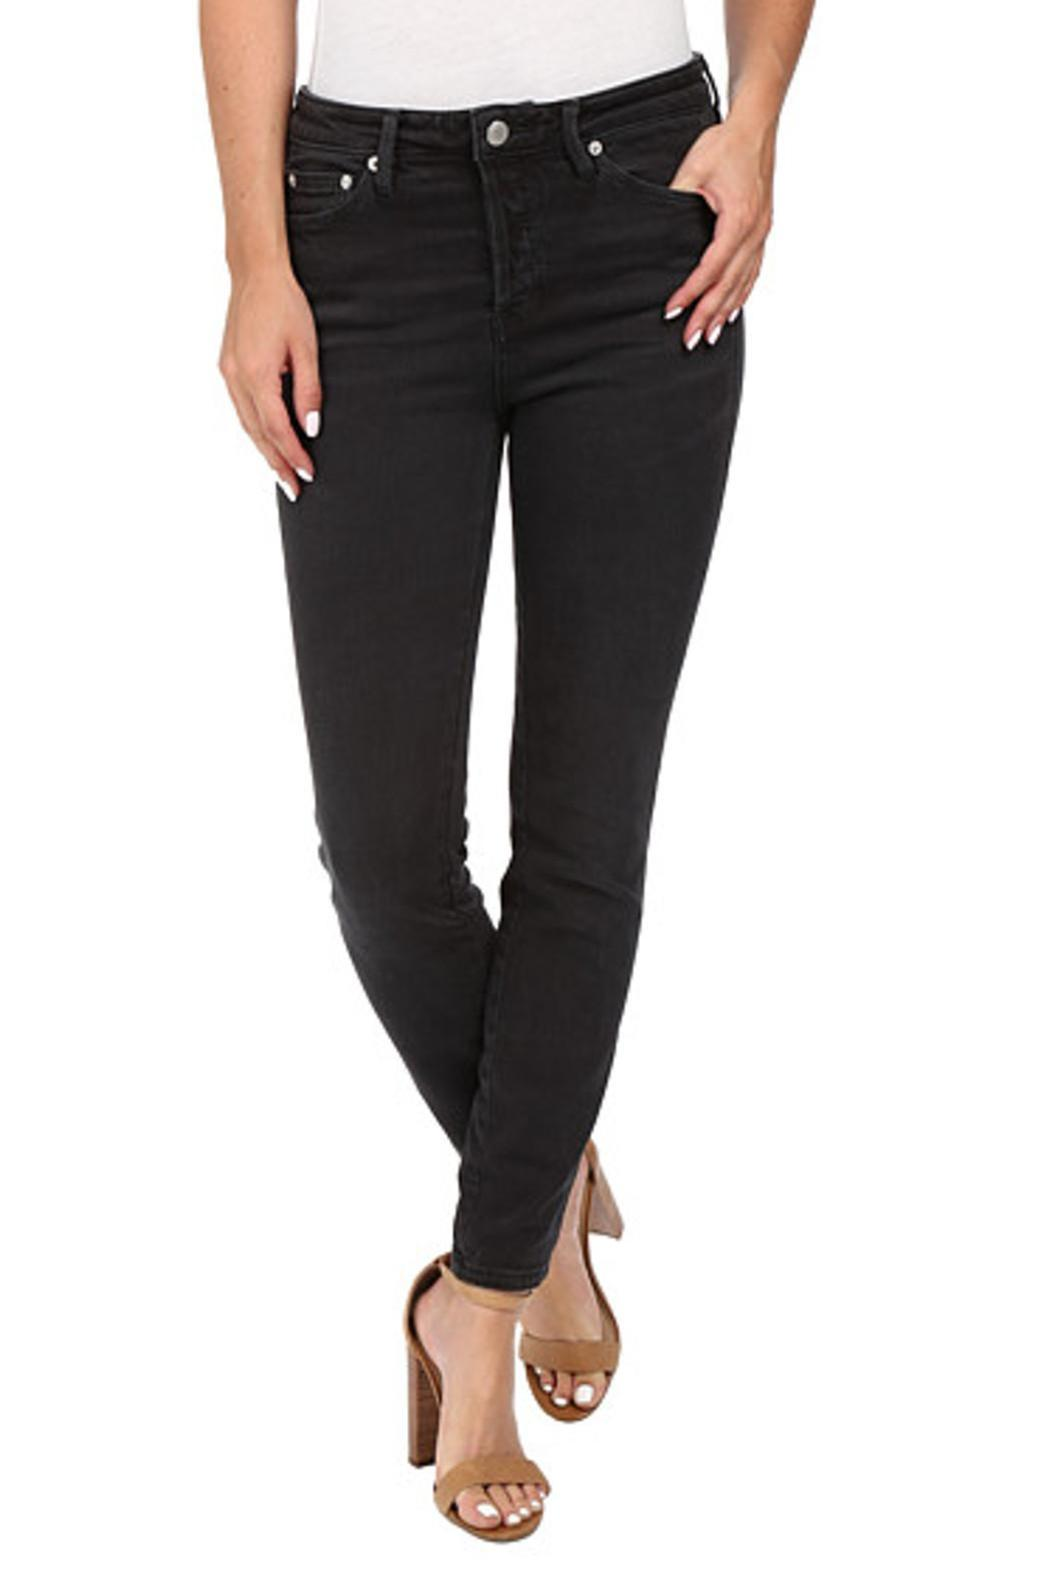 Free People Peyton High Rise Jeans - Front Cropped Image